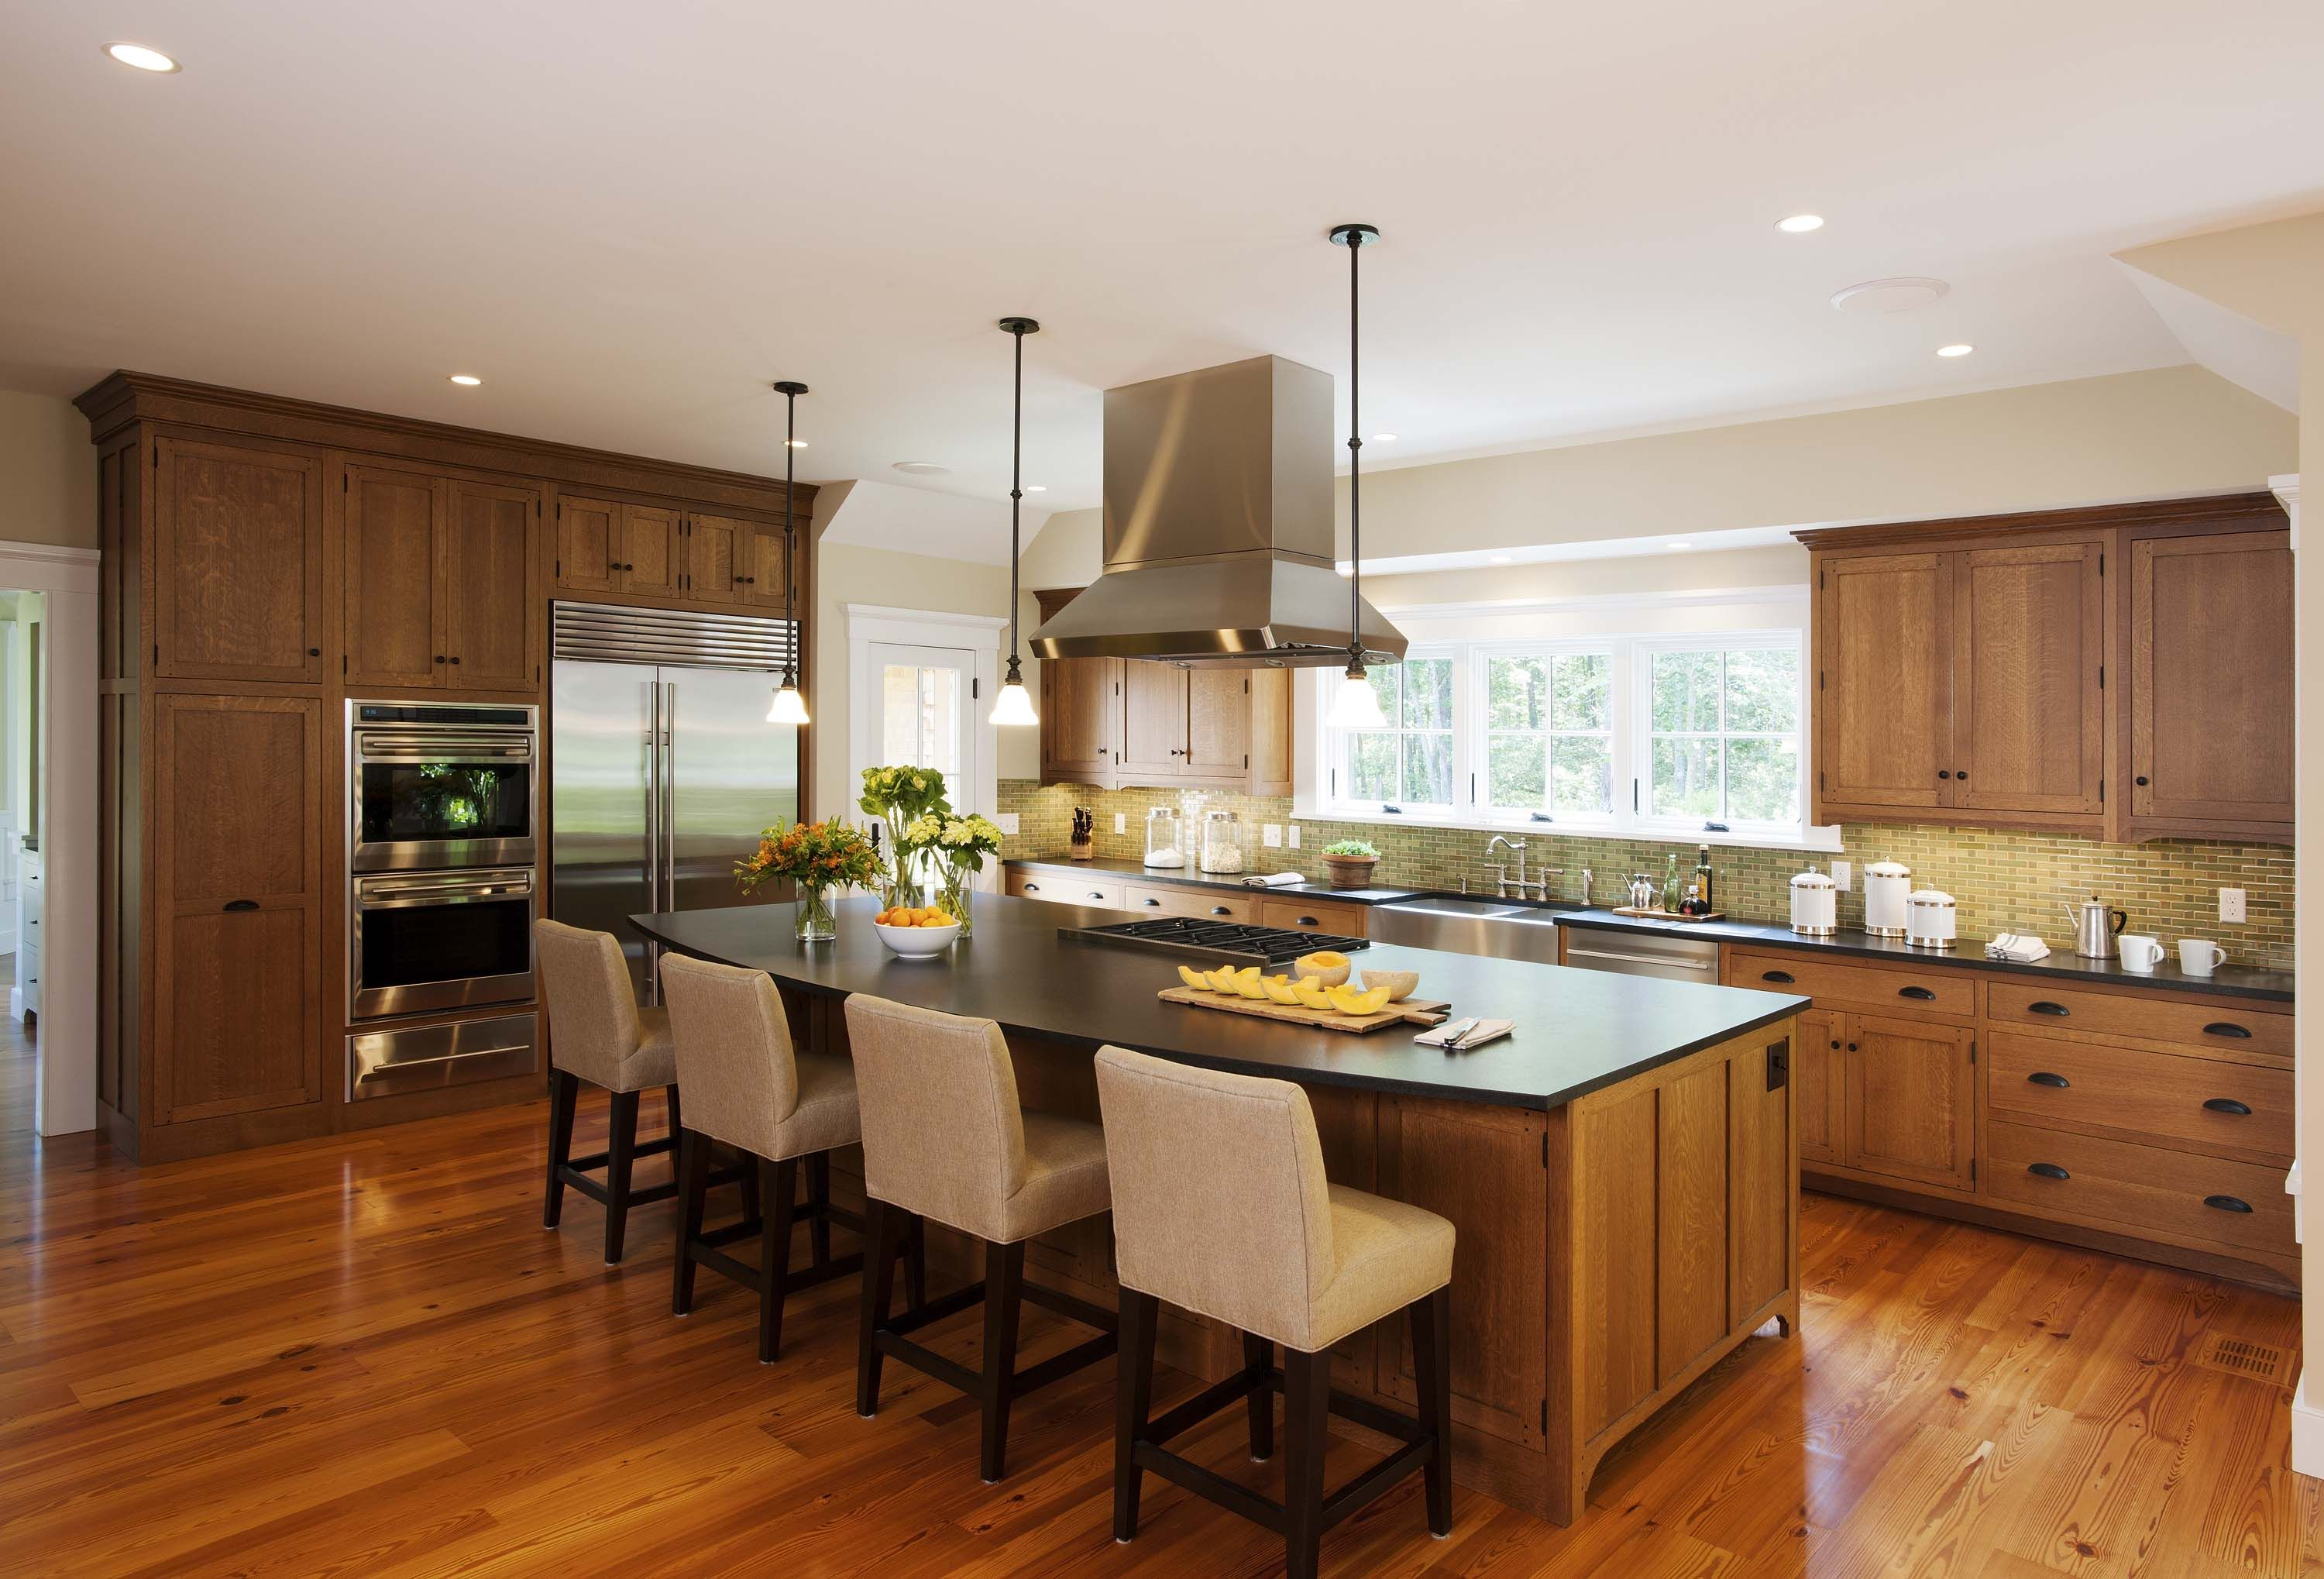 Where We Have Wall Cabinets If We Do Perhaps Lowering The Ceiling Would Be A Good With Images Kitchen Cabinet Styles Traditional Kitchen Cabinets Kitchen Cabinet Design